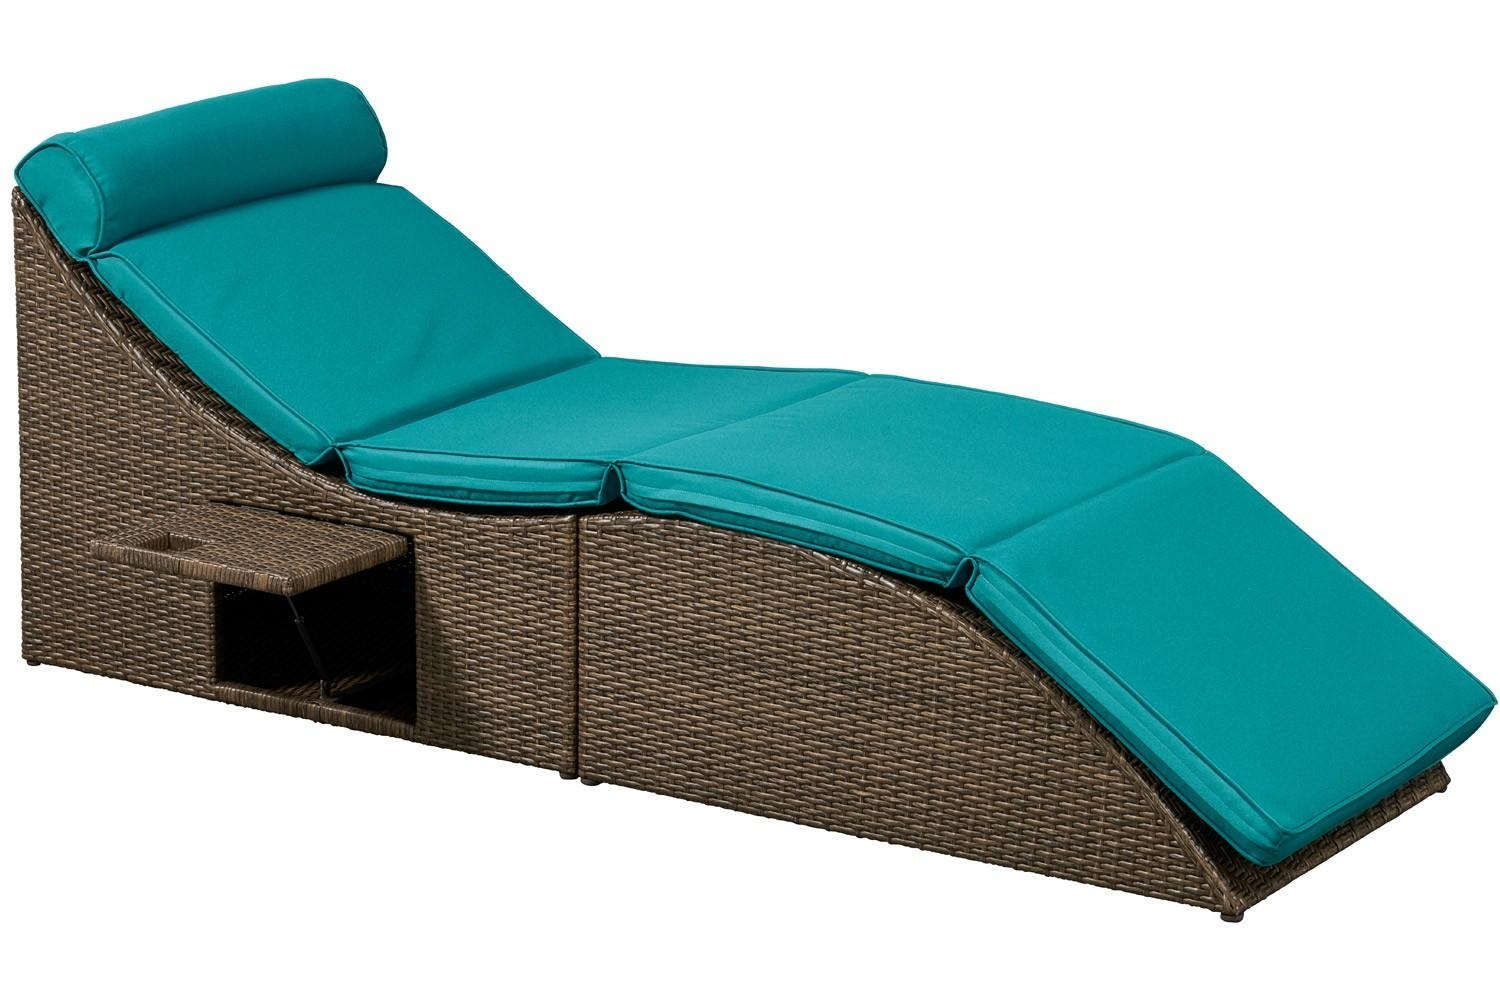 Outdoor Futon Sofa Bed Chaise Lounger Bodega With Sofa Lounger Beds (Image 18 of 20)